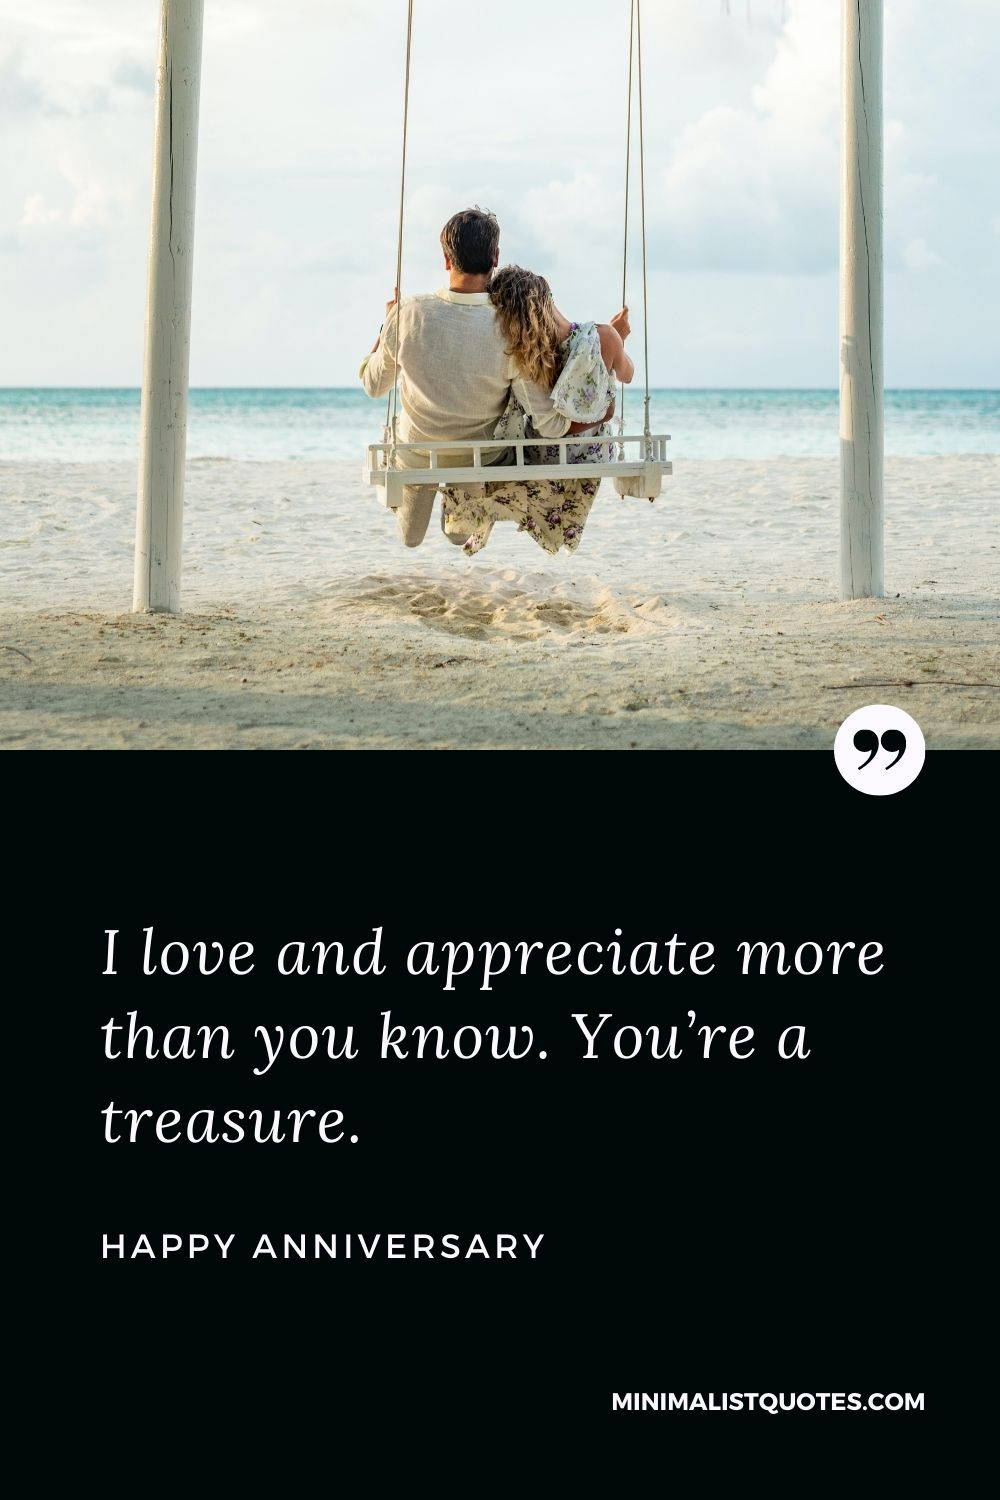 Anniversary wish, quote & message with image: I love and appreciate more than you know. You're a treasure. Happy Anniversary!